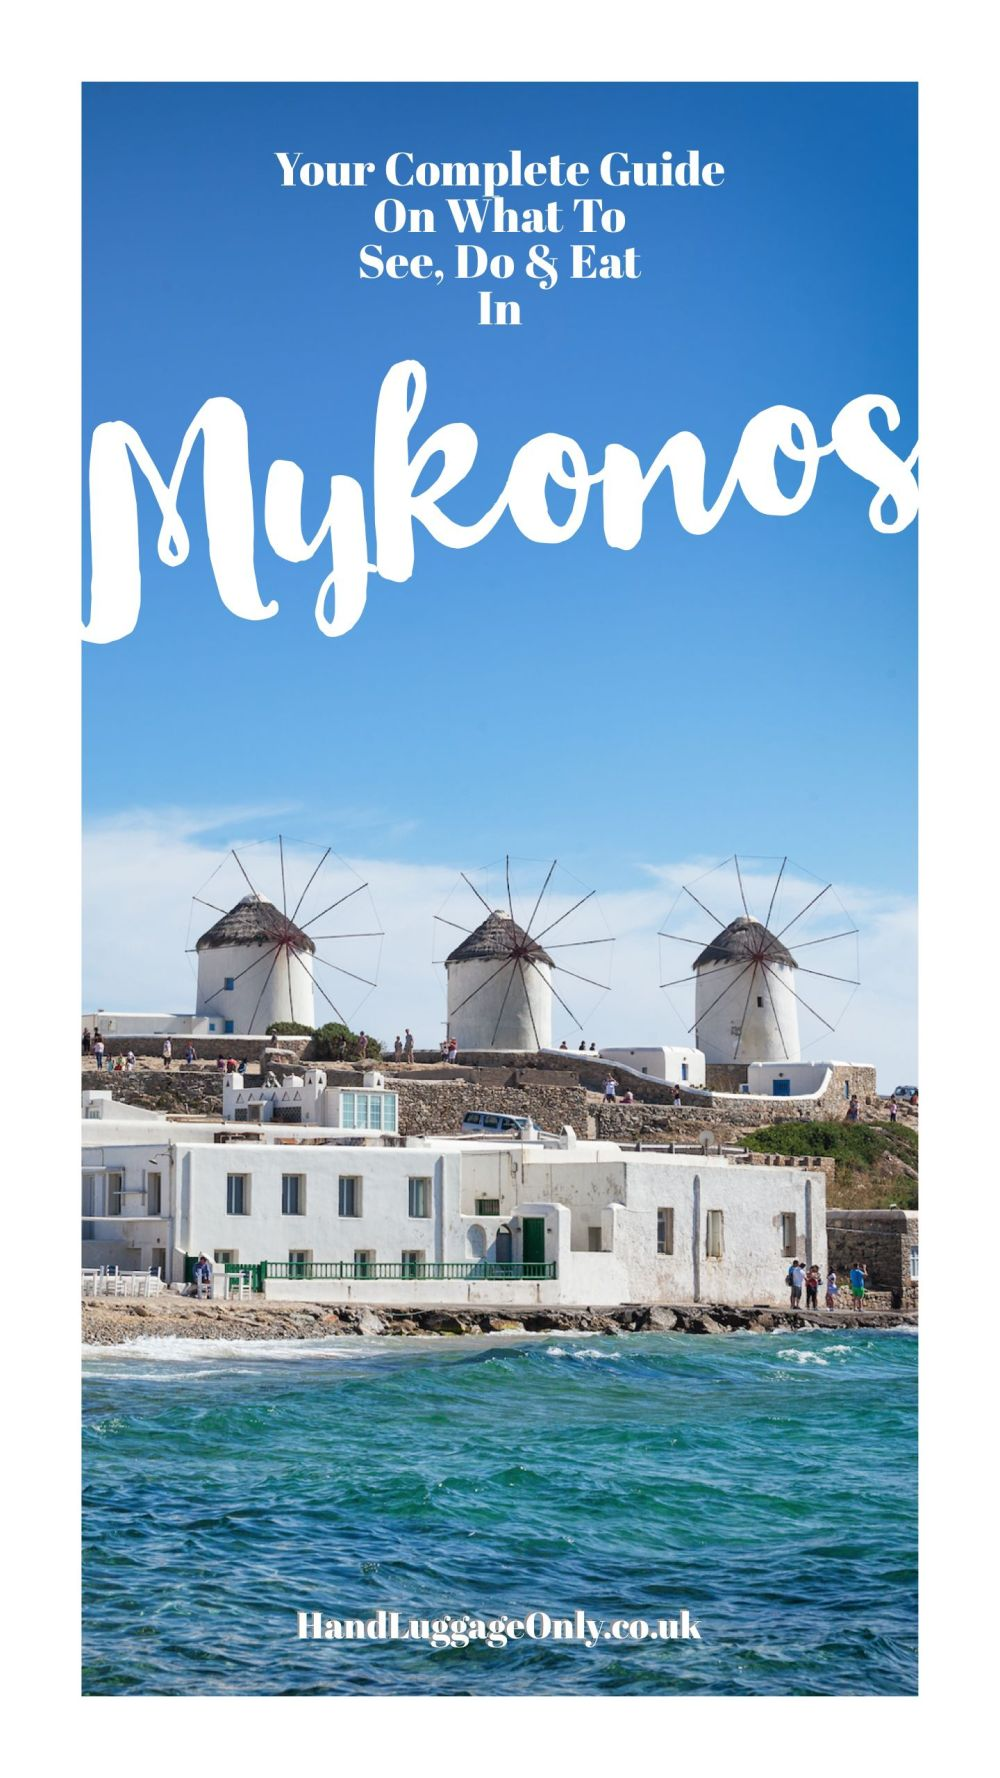 The Complete Guide On Things To See, Do And Eat In Mykonos, Greece (2)